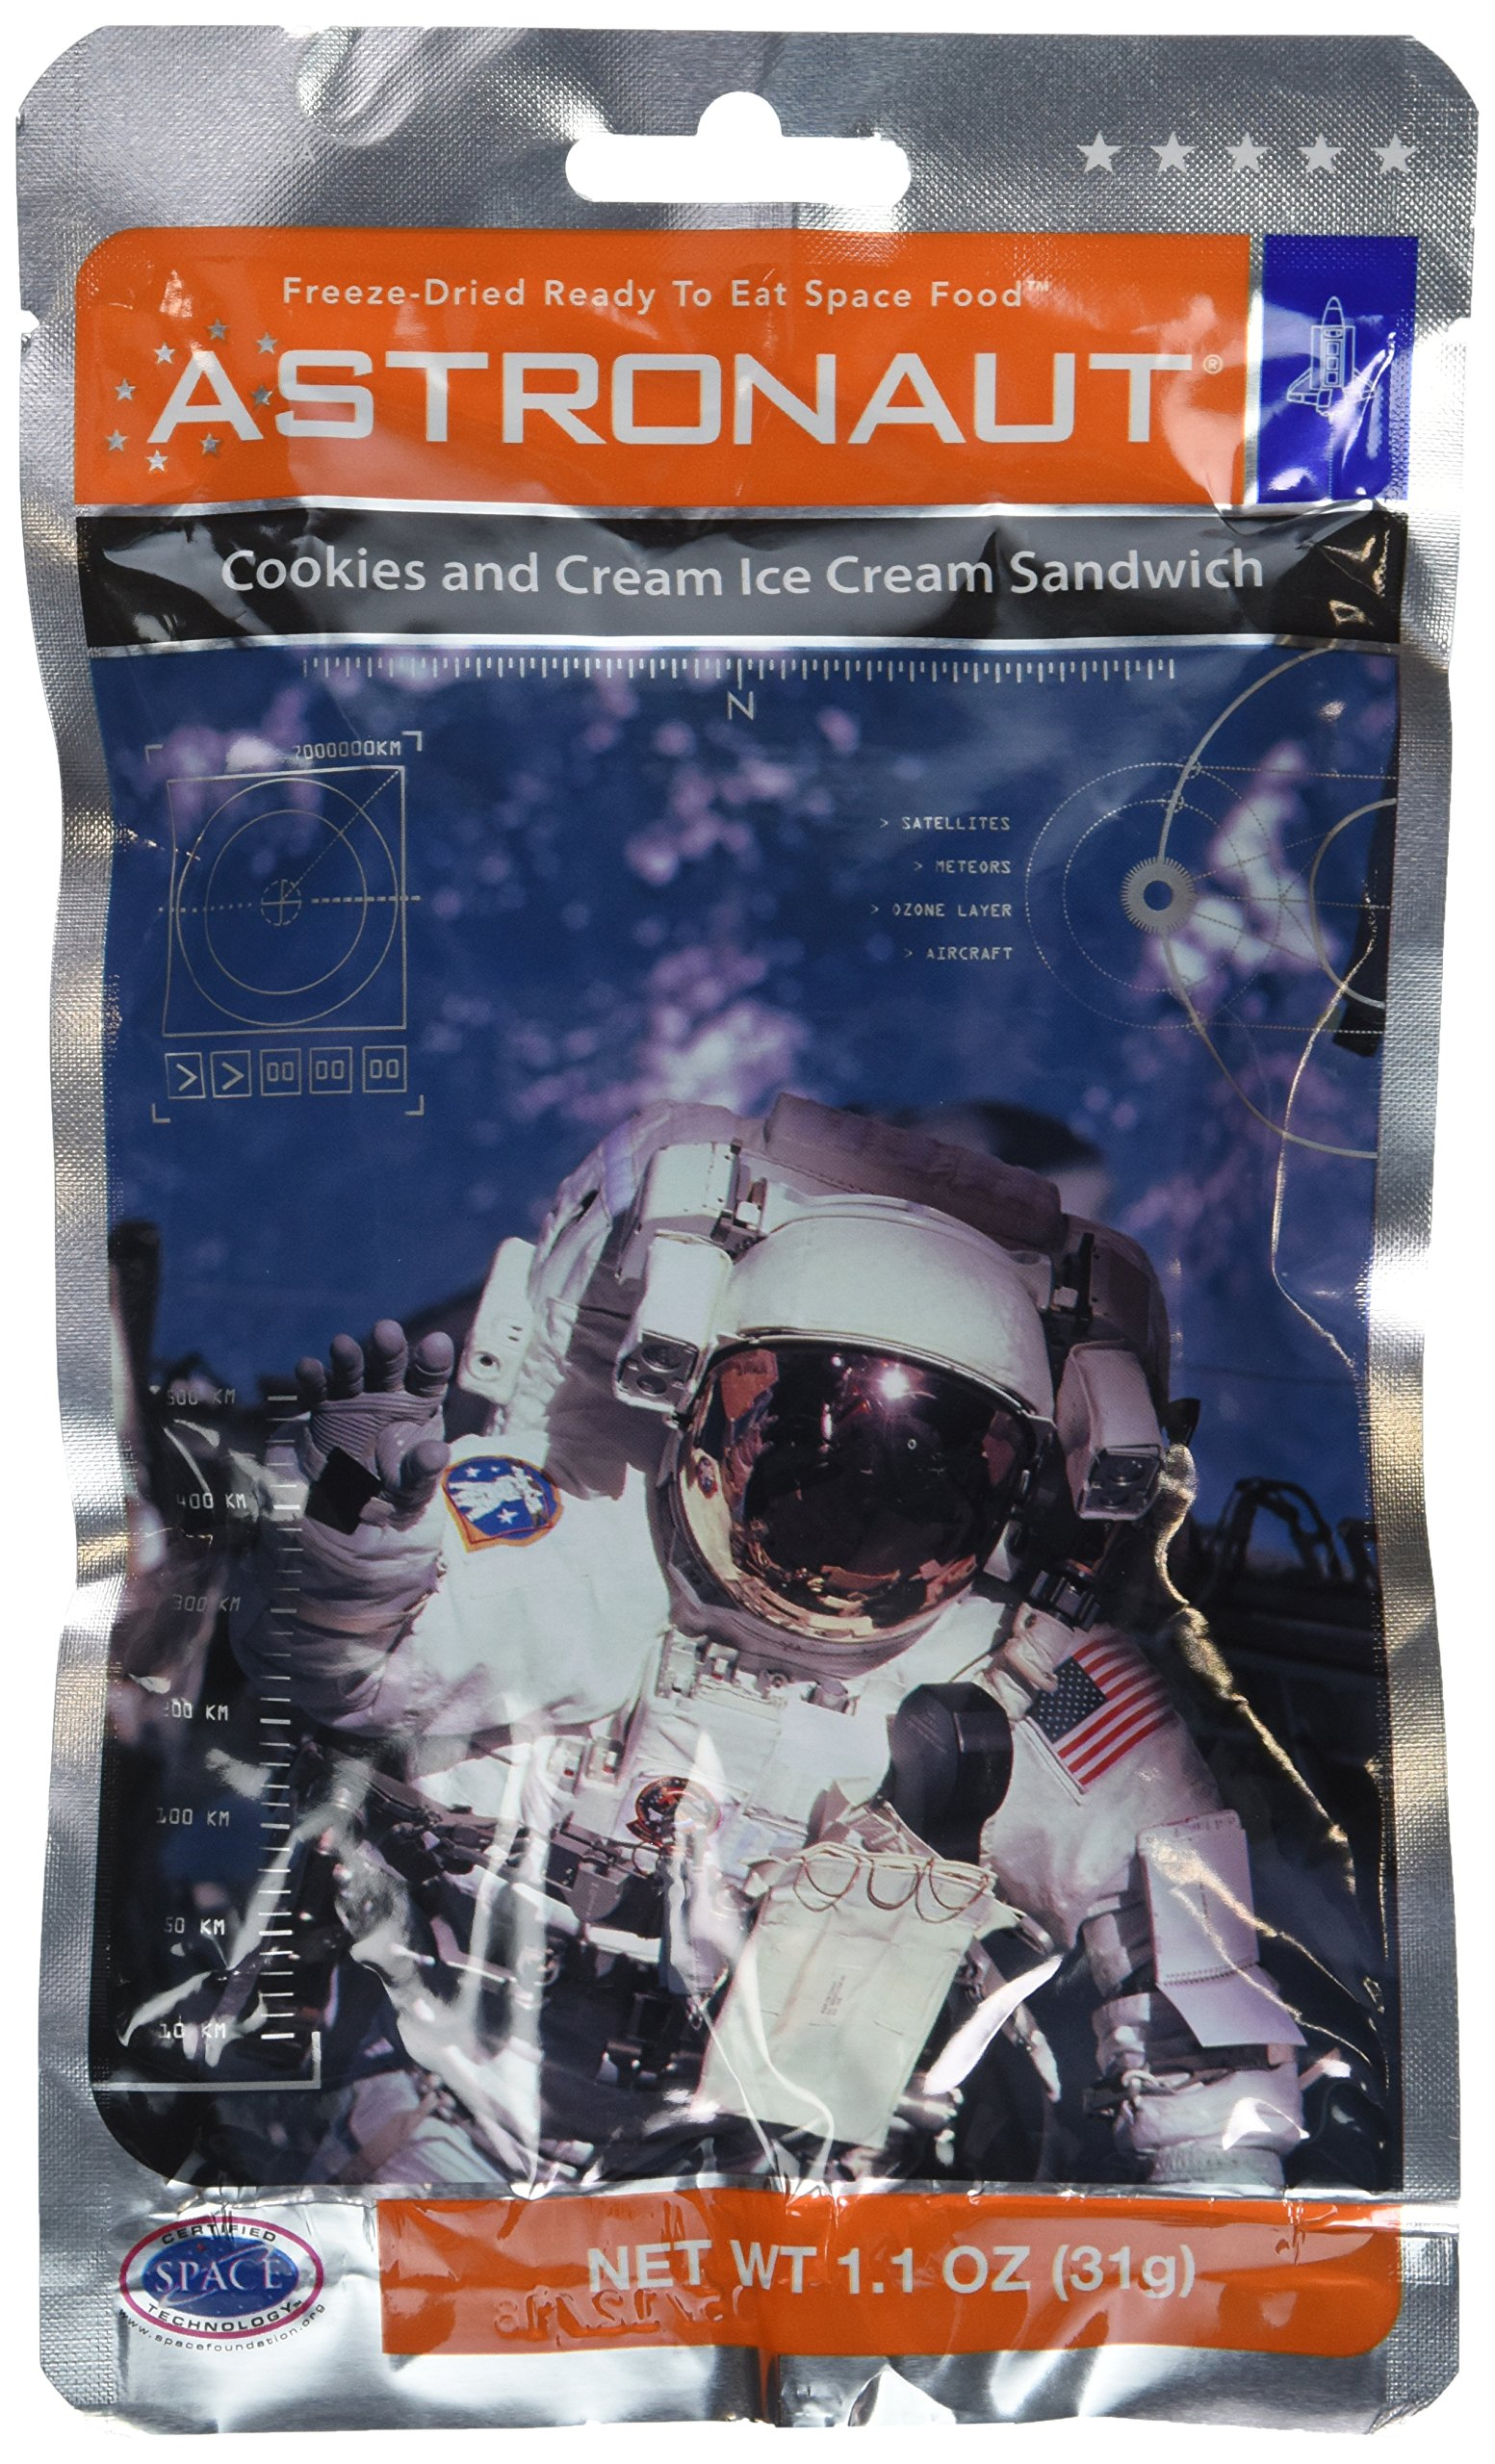 Astronaut Freeze-Dried Ready To Eat Space Food Ice Cream, Cookies And Cream Ice Cream Sandwich Flavor - Pack of 3 (1.1 Oz. Ea.) by Astronaut Foods